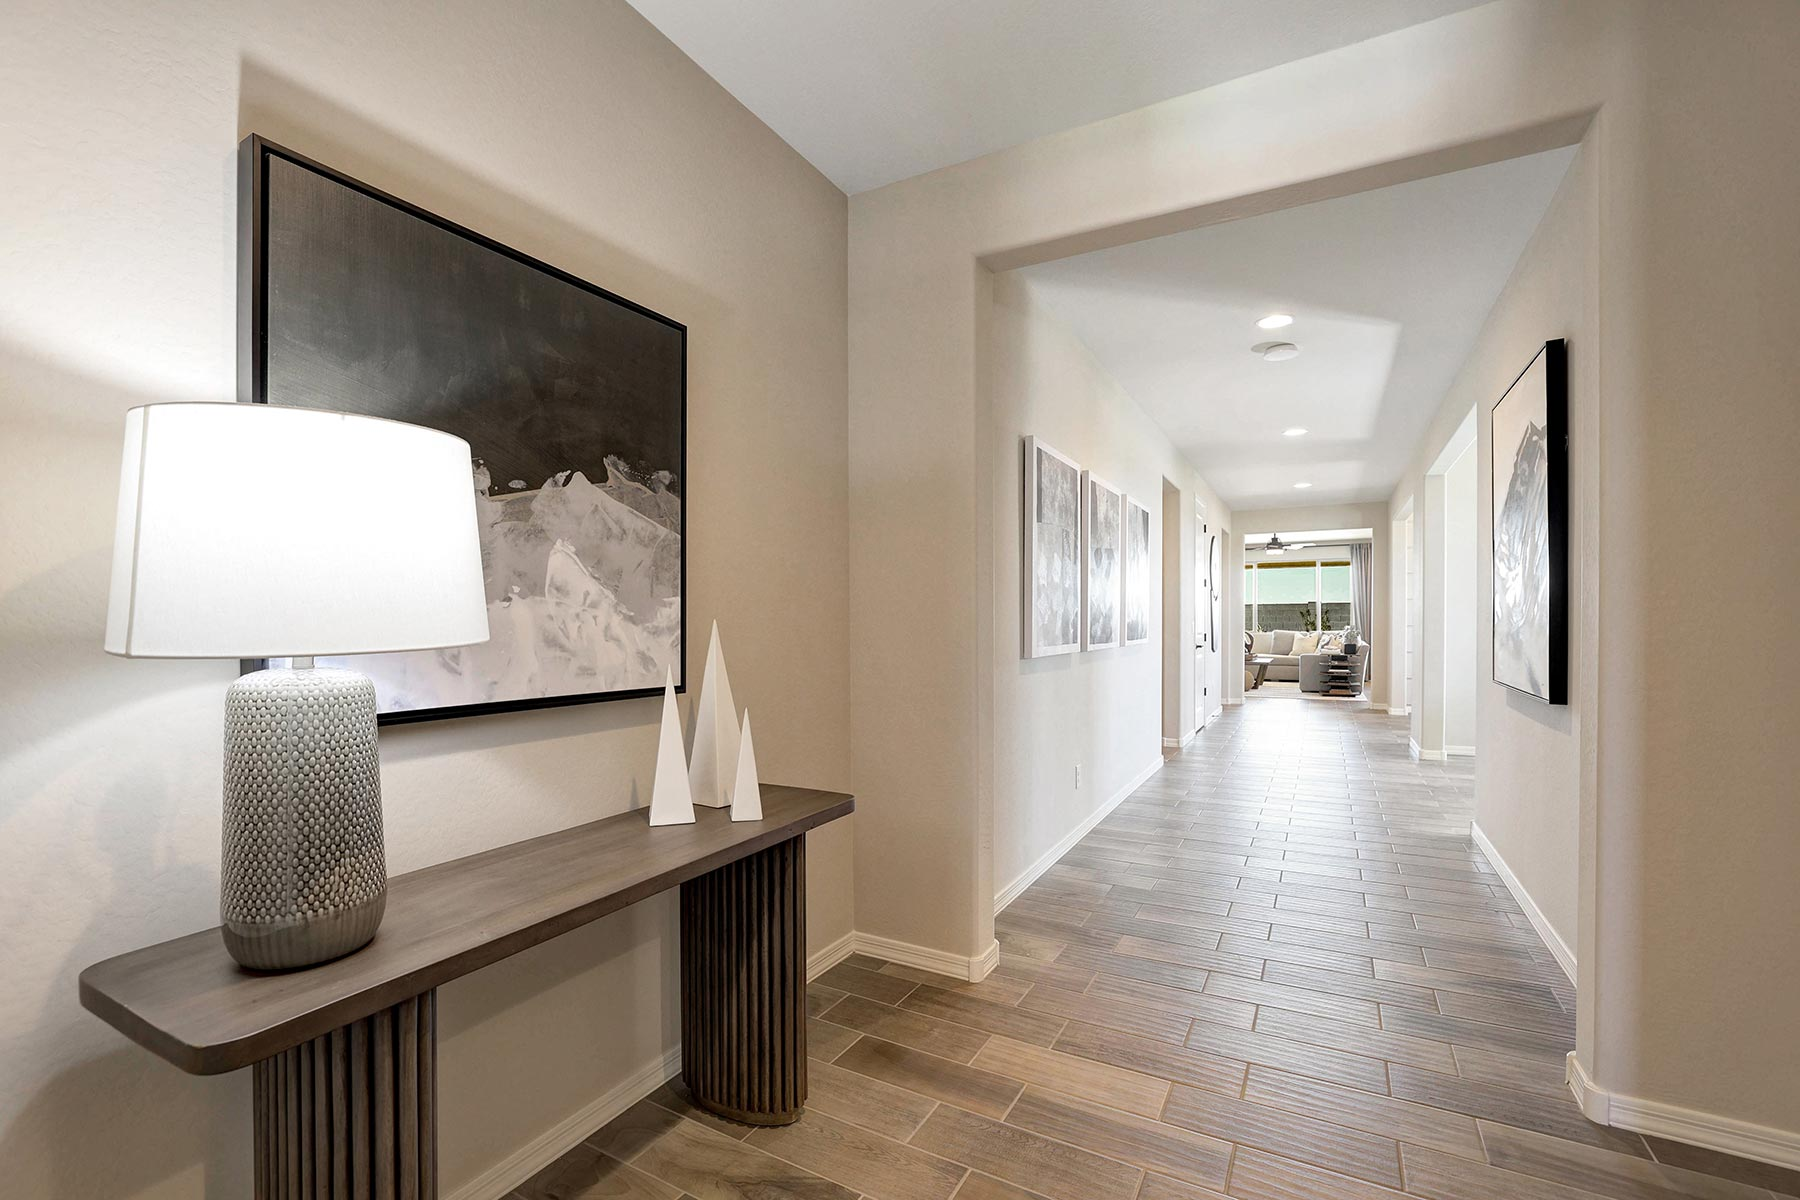 Bellwood Plan Hallway at Azure Canyon in Goodyear Arizona by Mattamy Homes